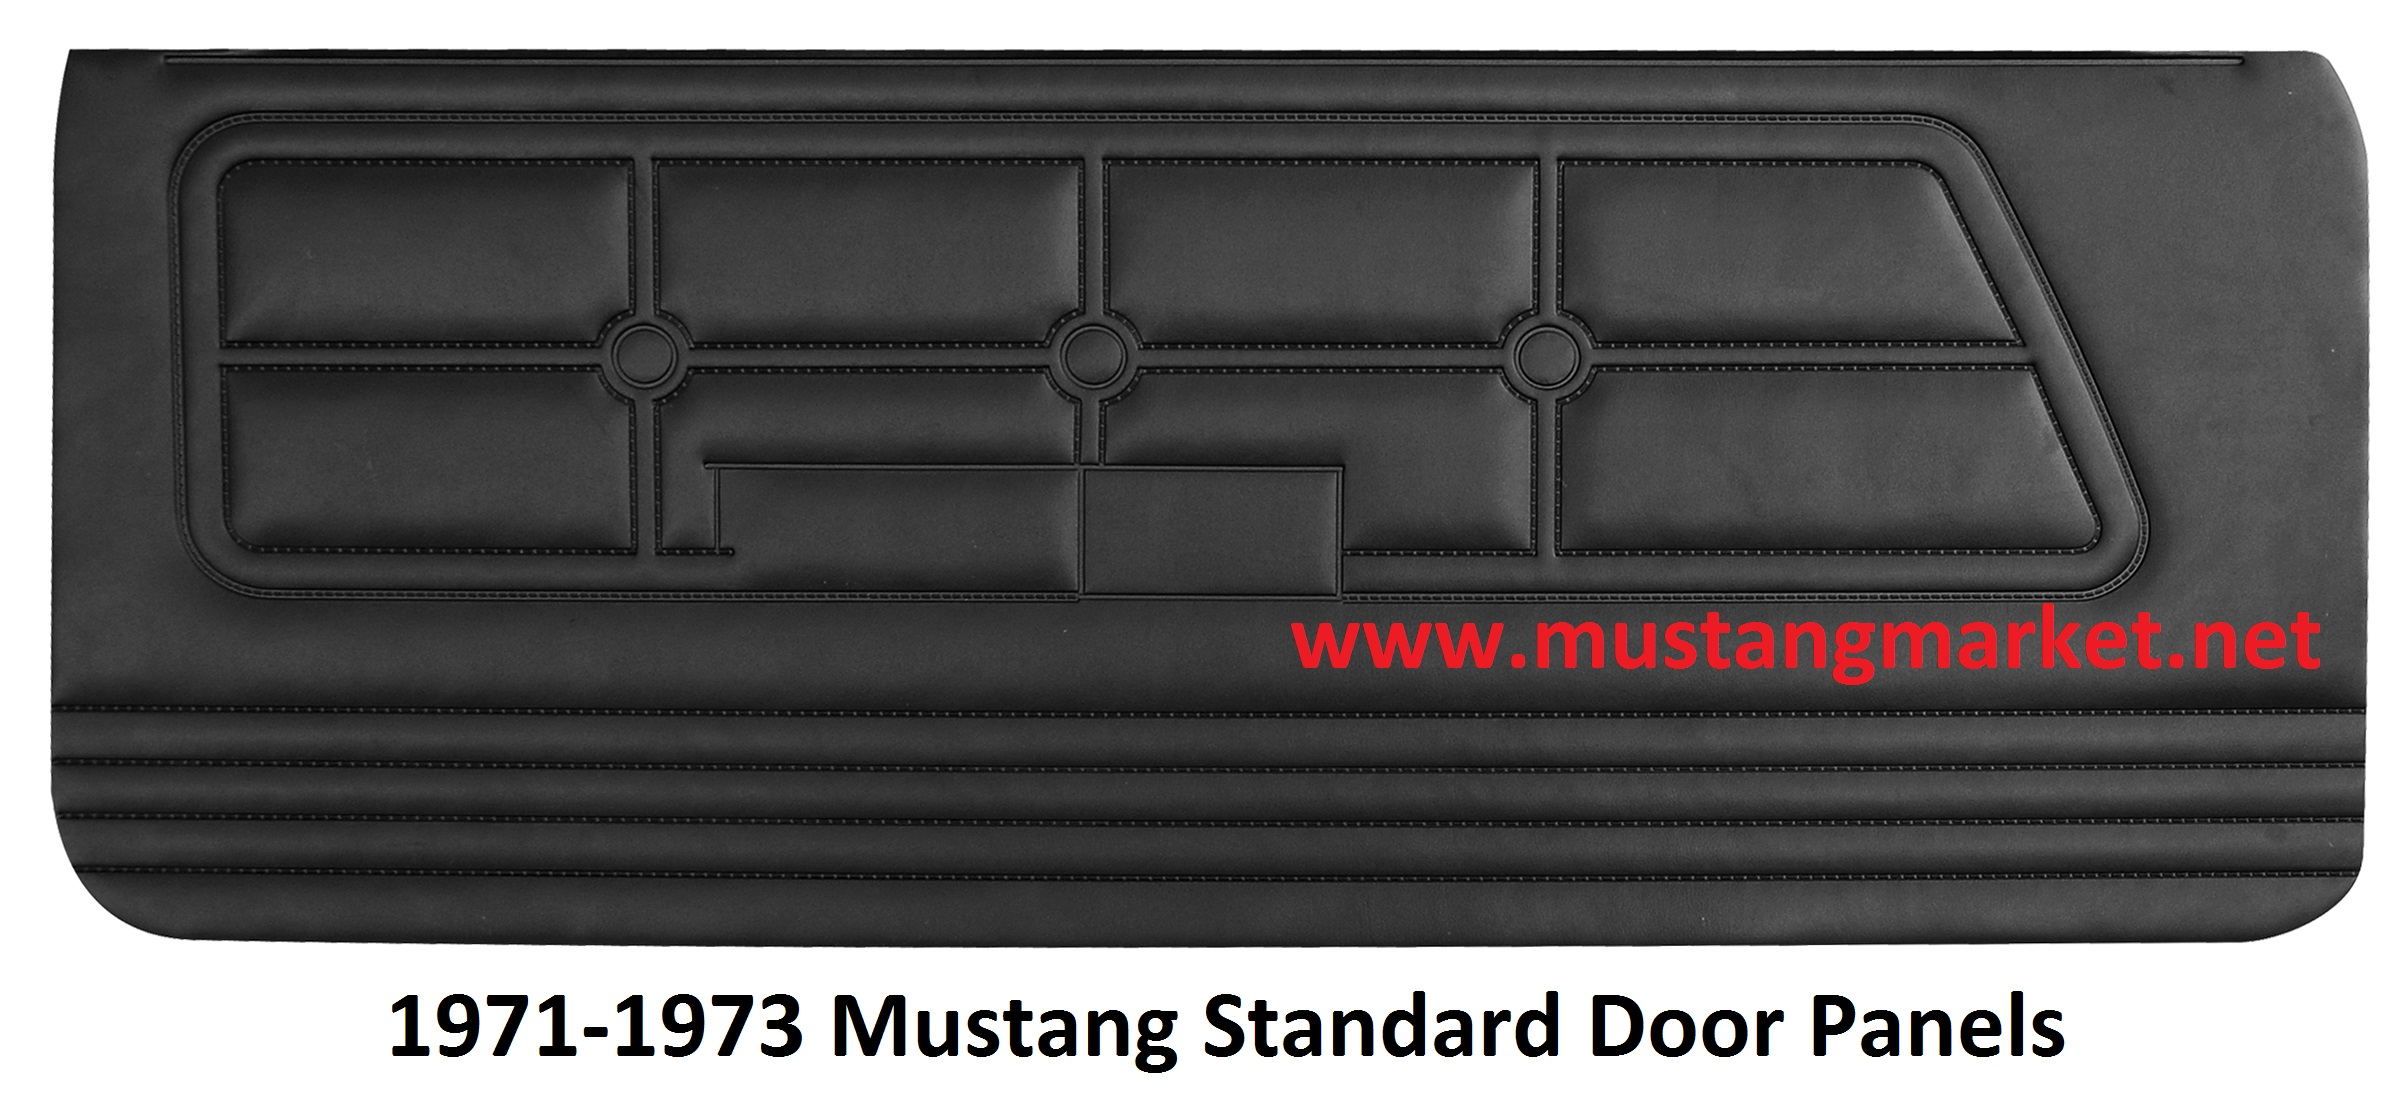 1971 1972 1973 mustang standard door panels for 05 mustang door panels